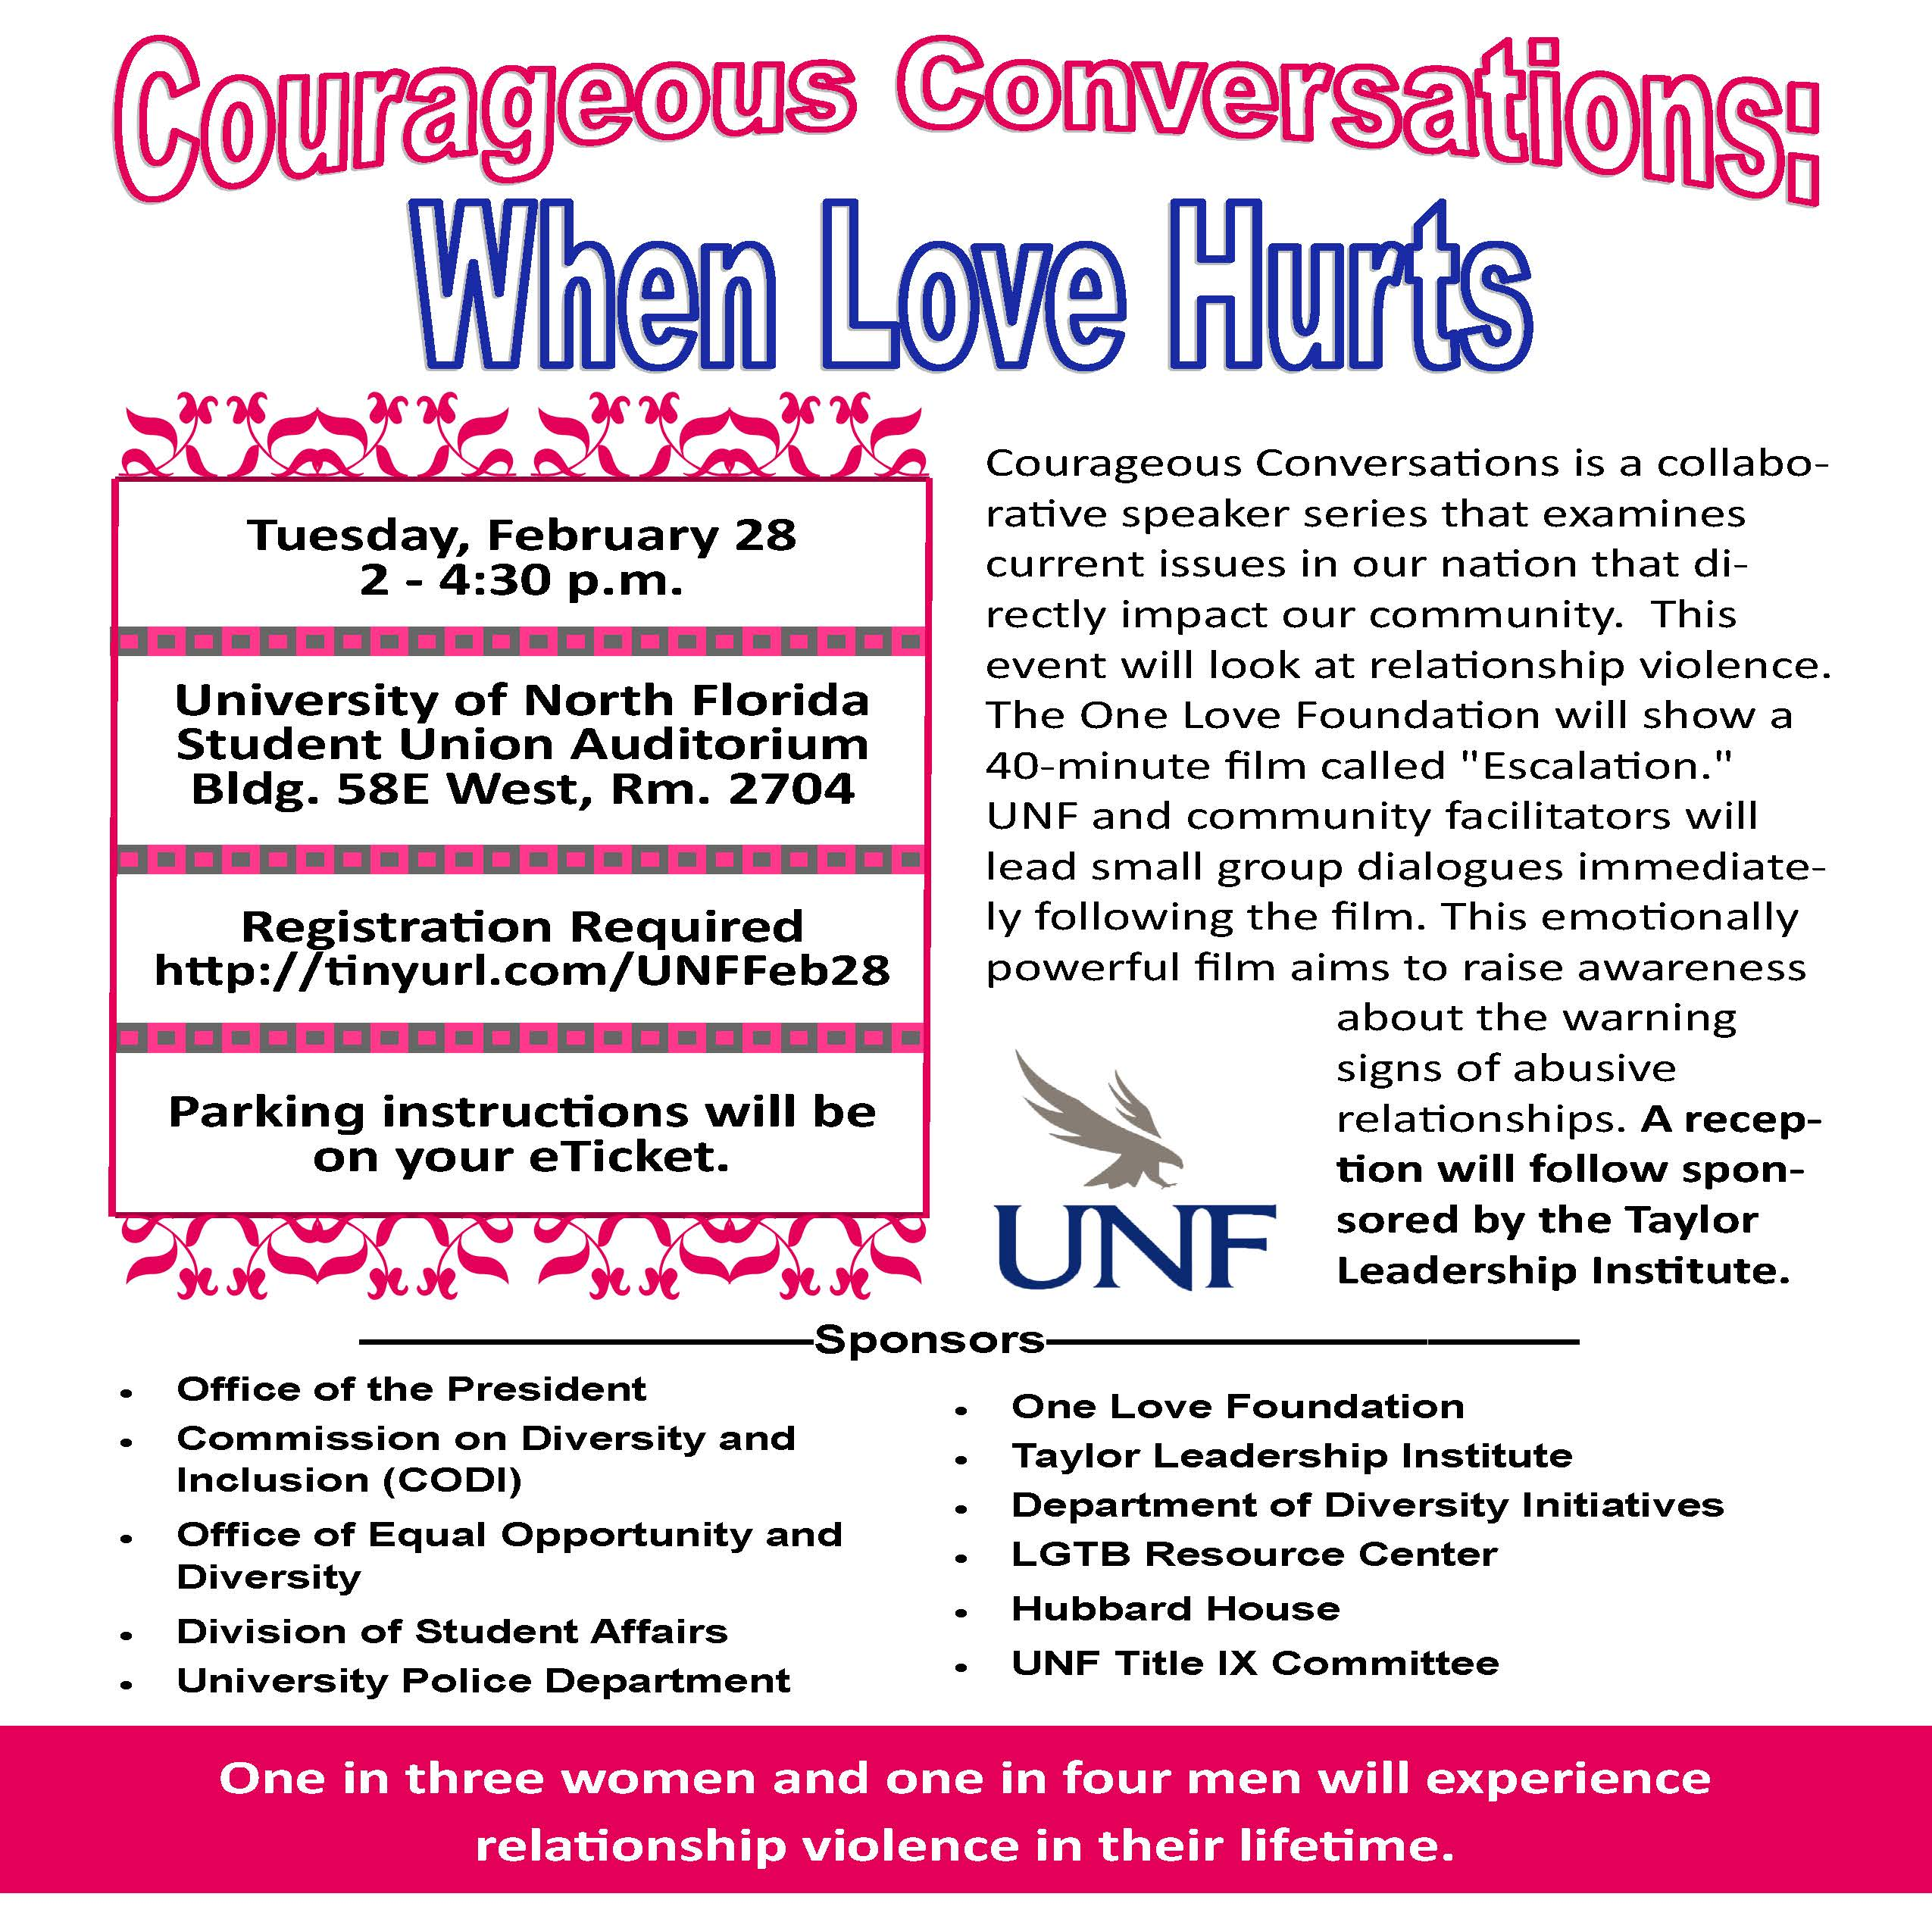 Courageous Conversations: When Love Hurts